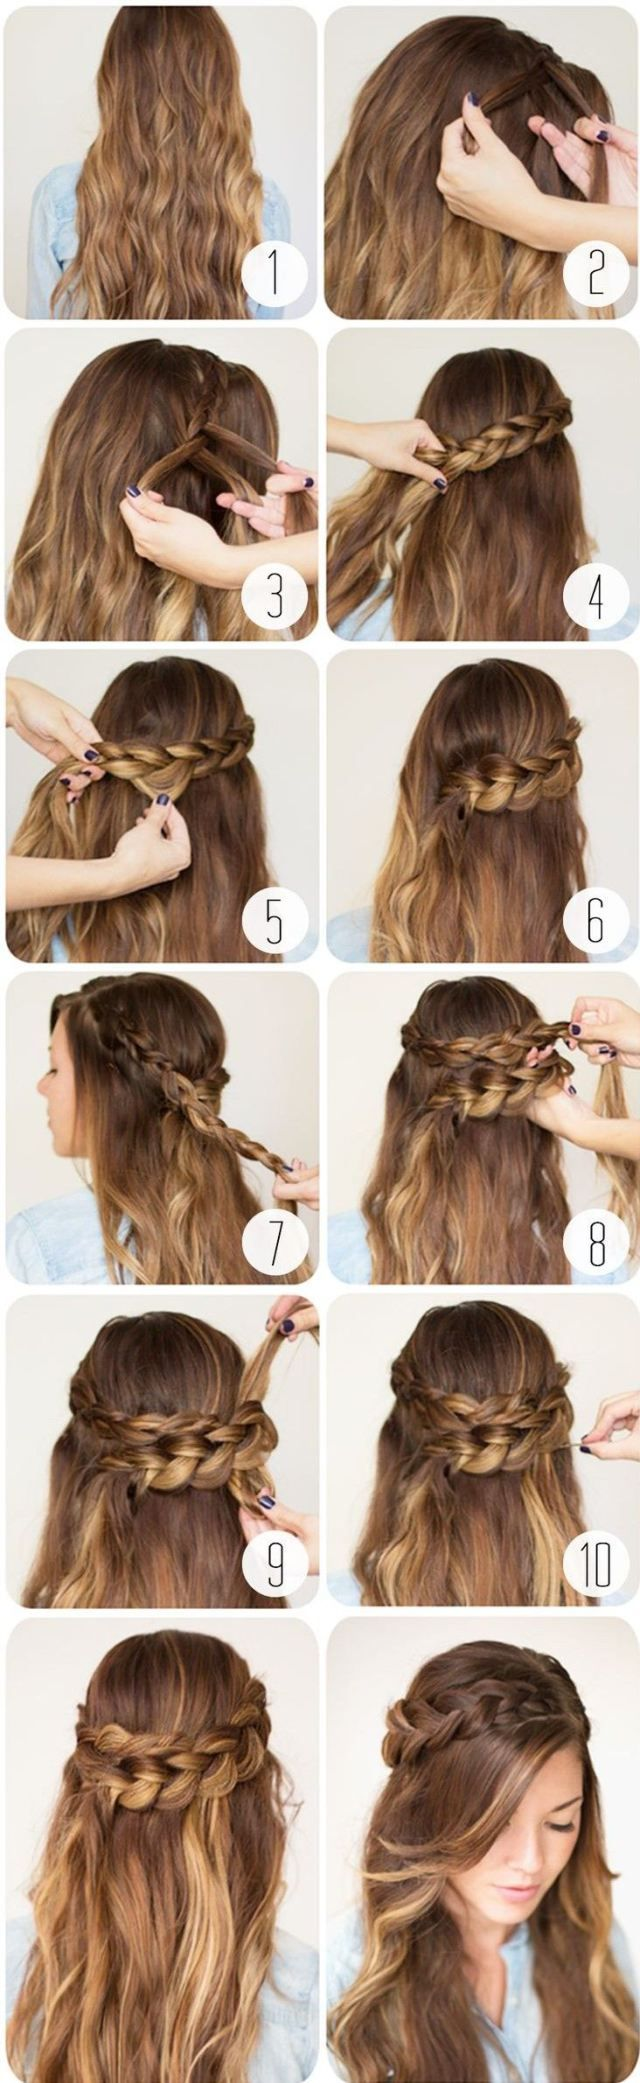 Step by step braided hair tutorials cute and easy braided